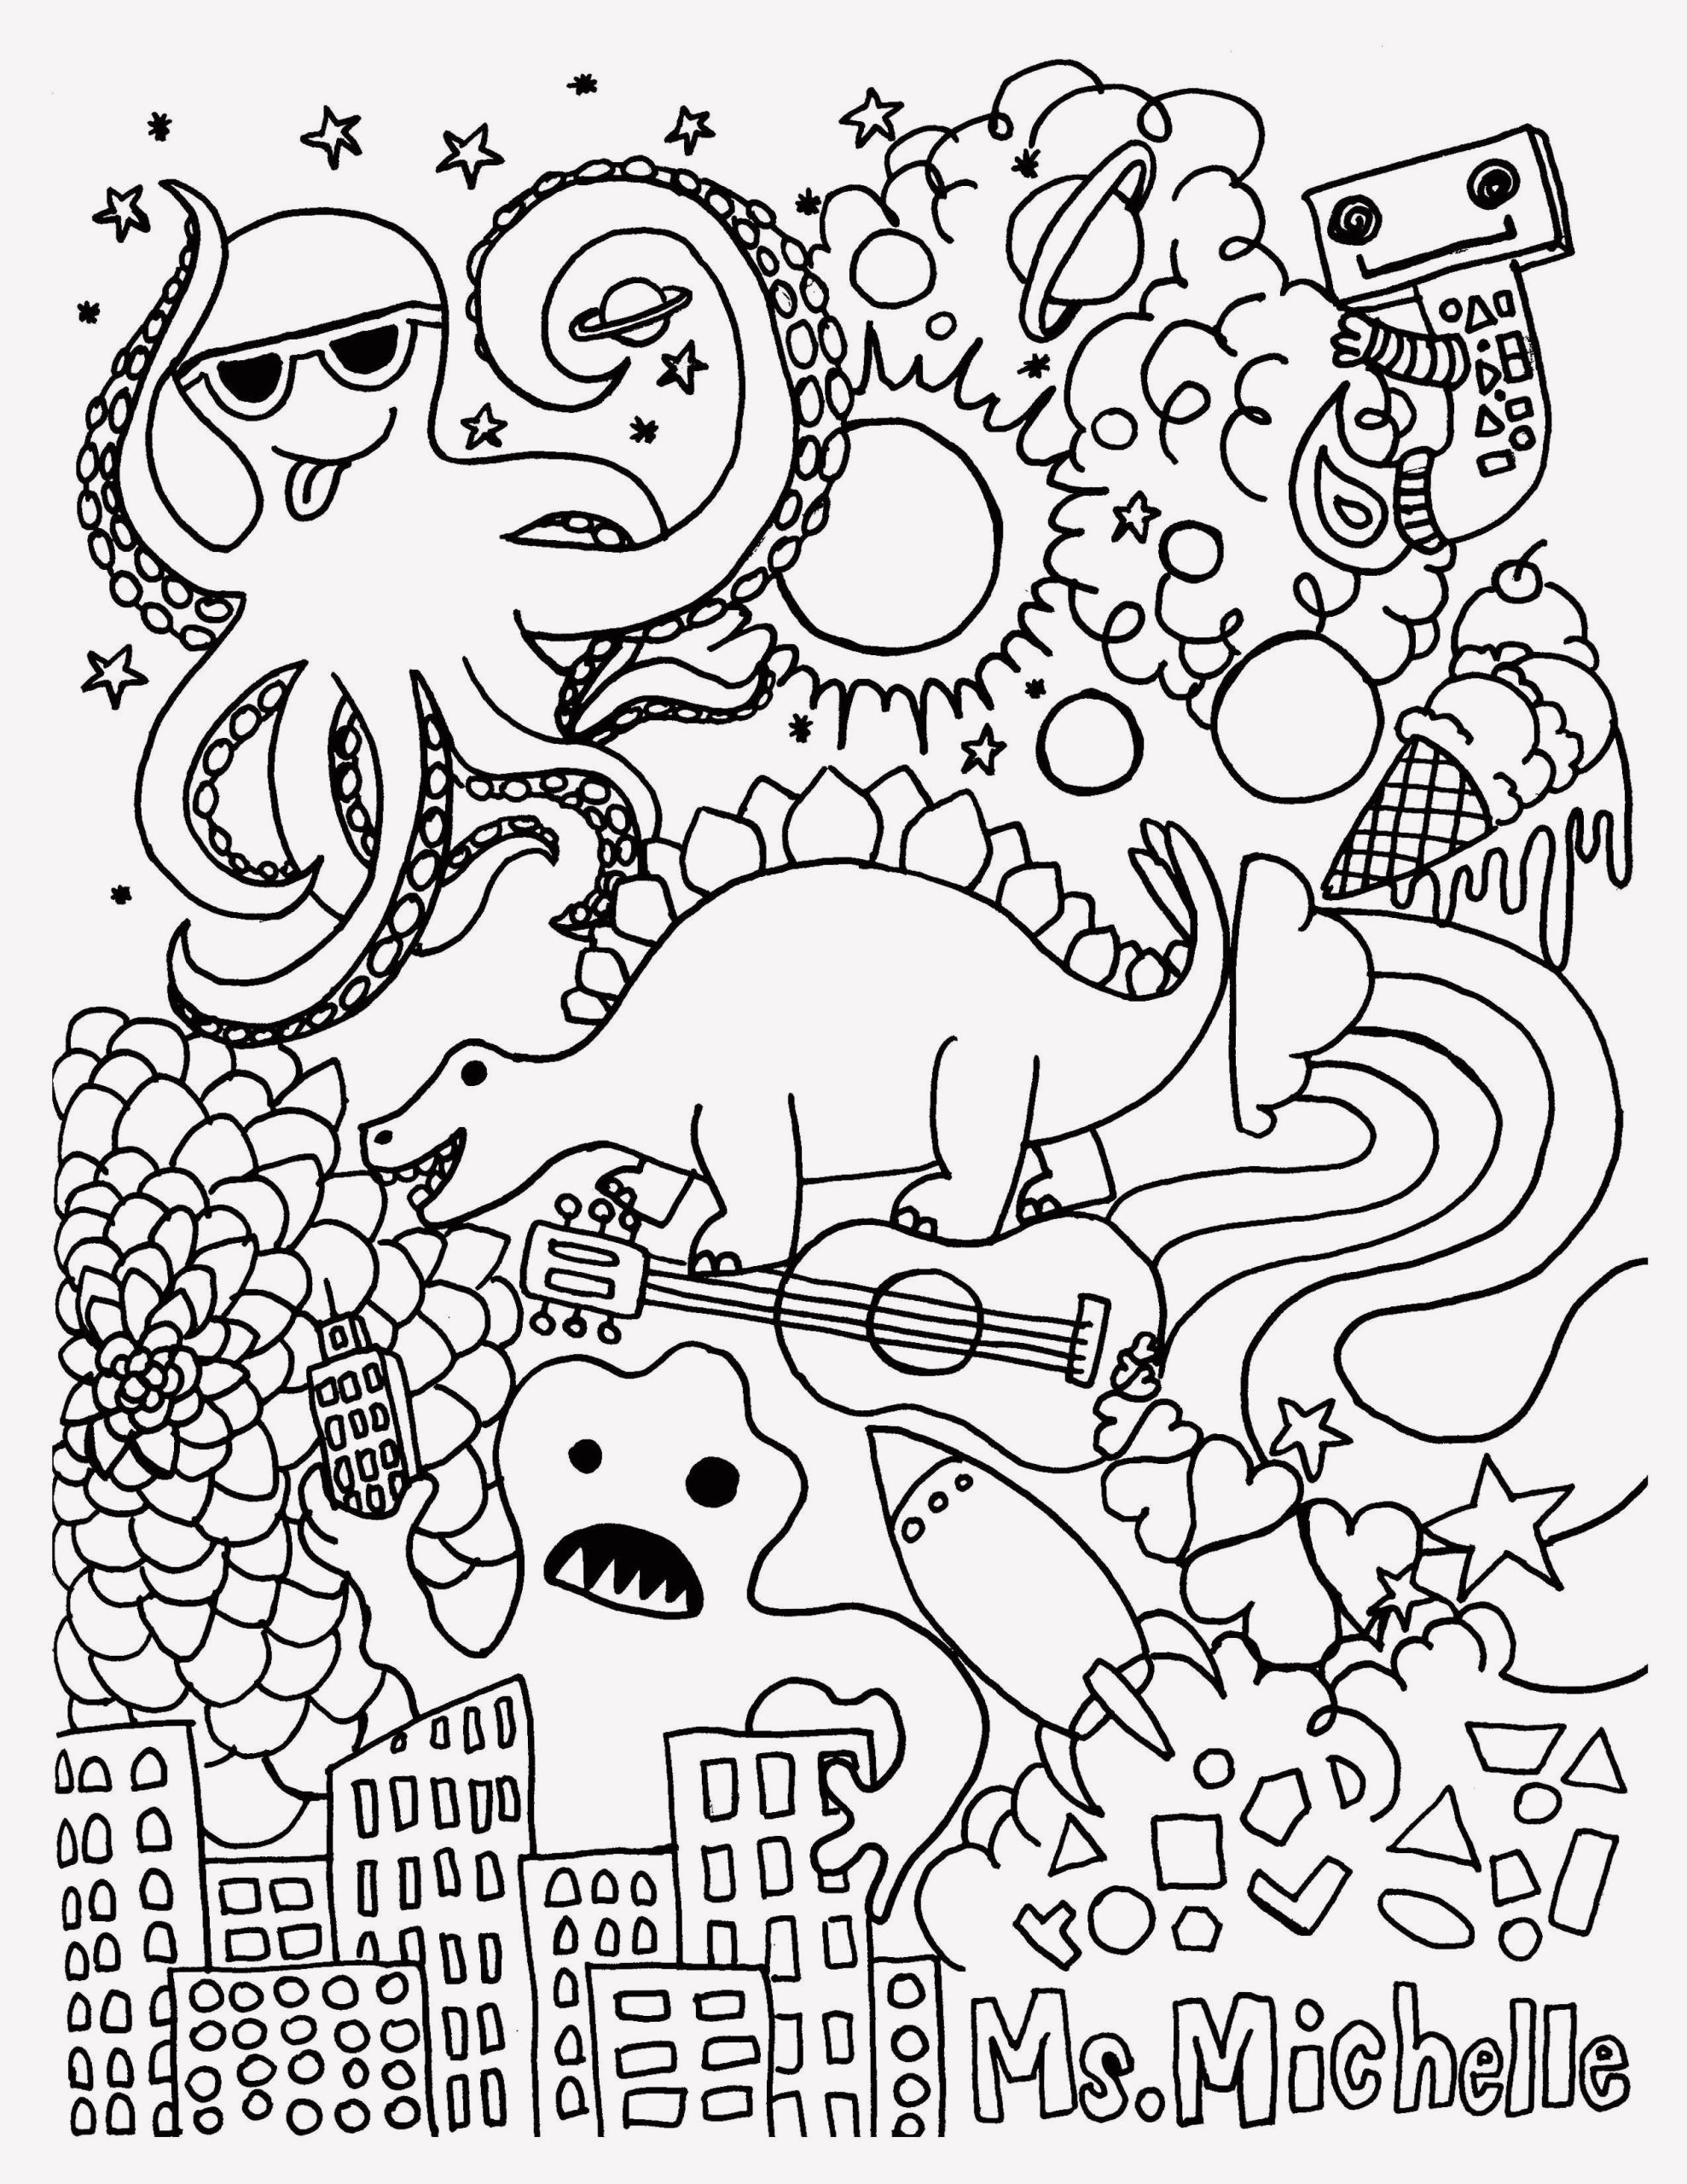 18 Winter Coloring Pages Free Pdf Coloring Pages Inspirational Mandala Coloring Pages Disney Coloring Pages